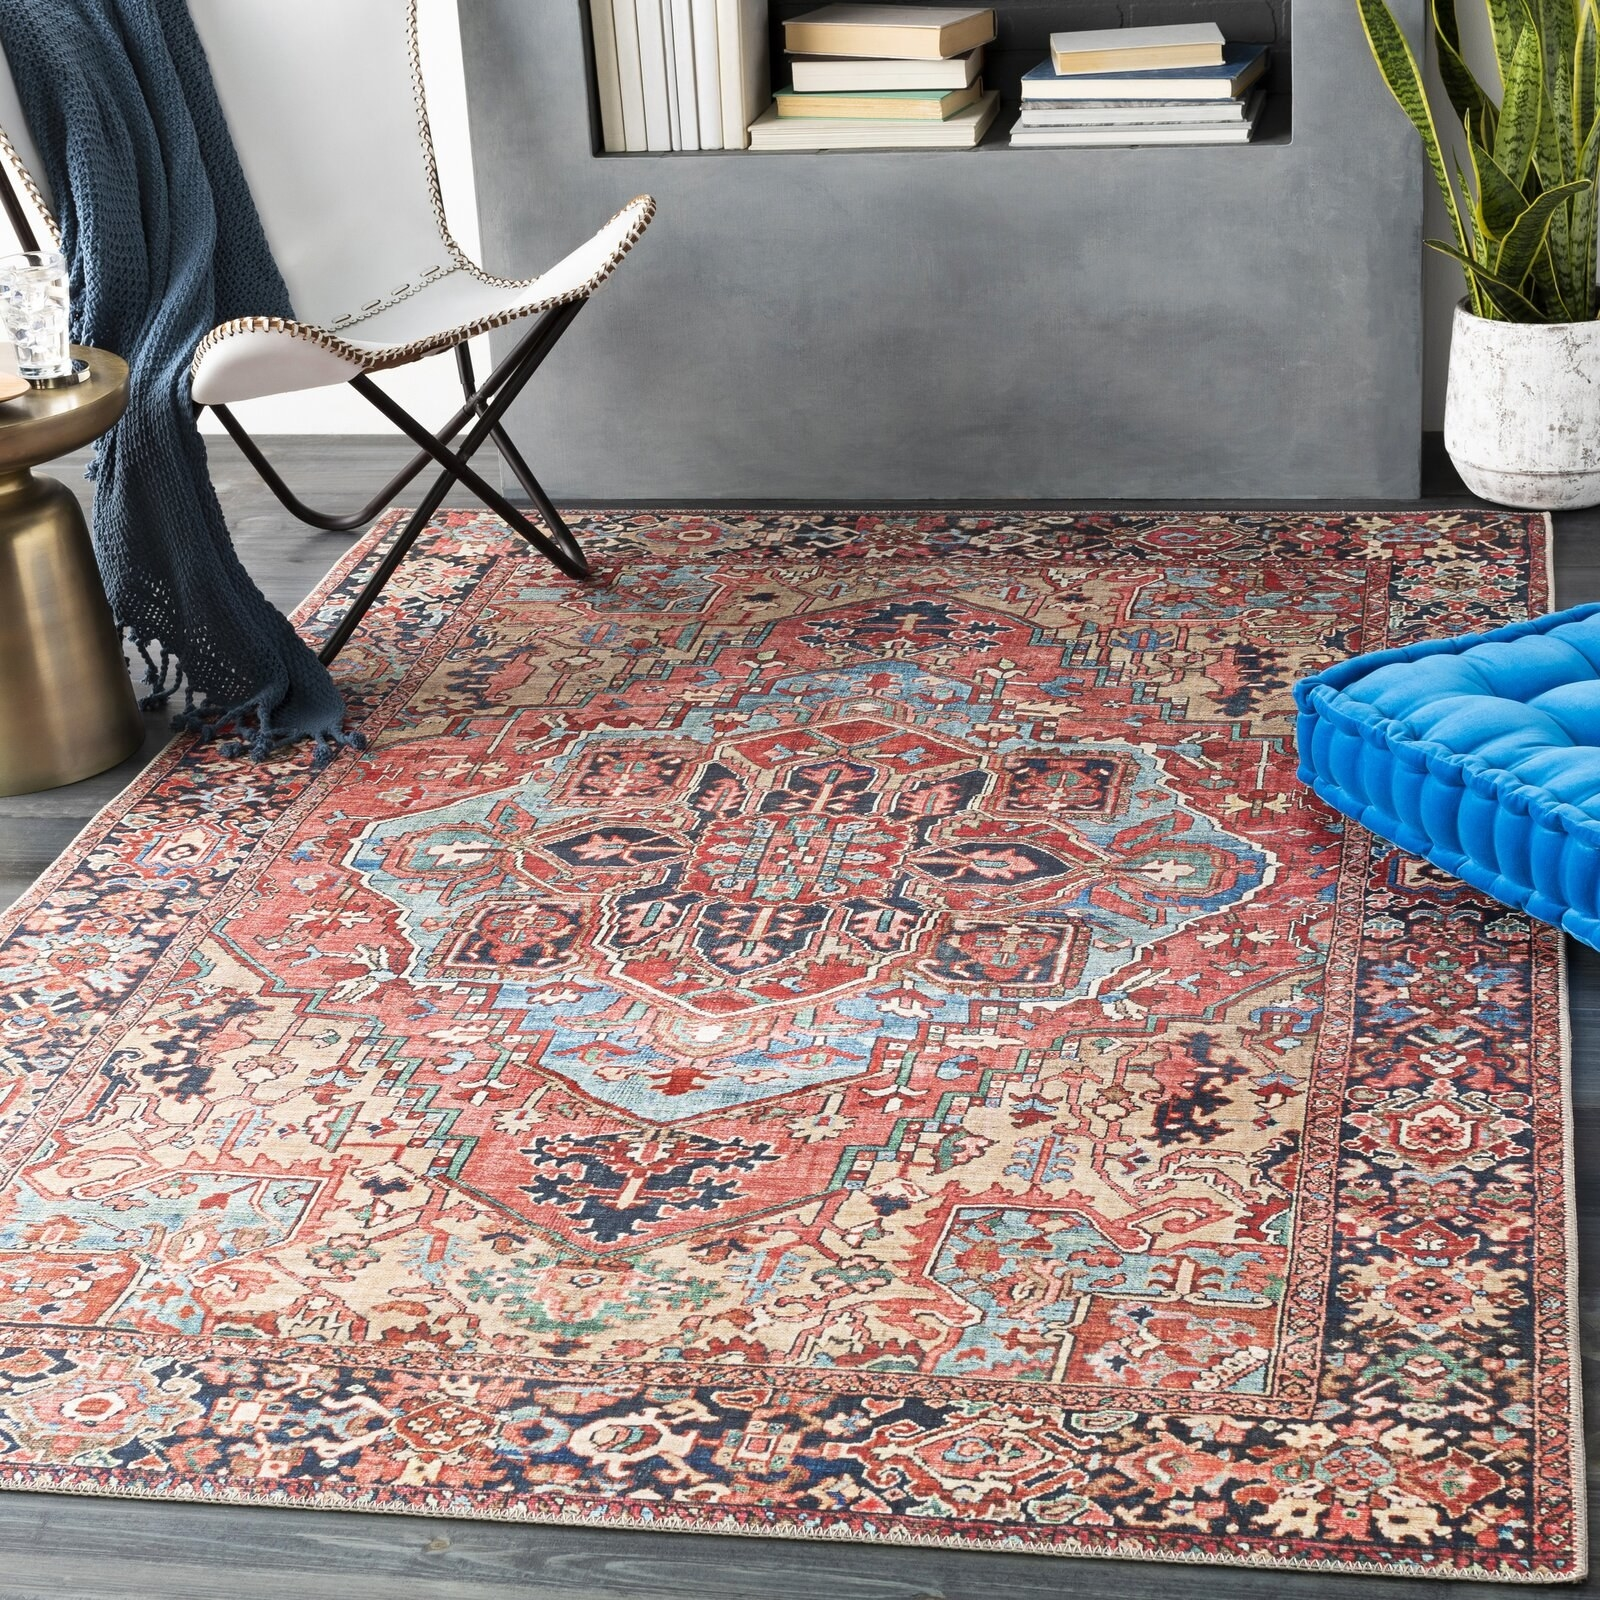 The rug in red